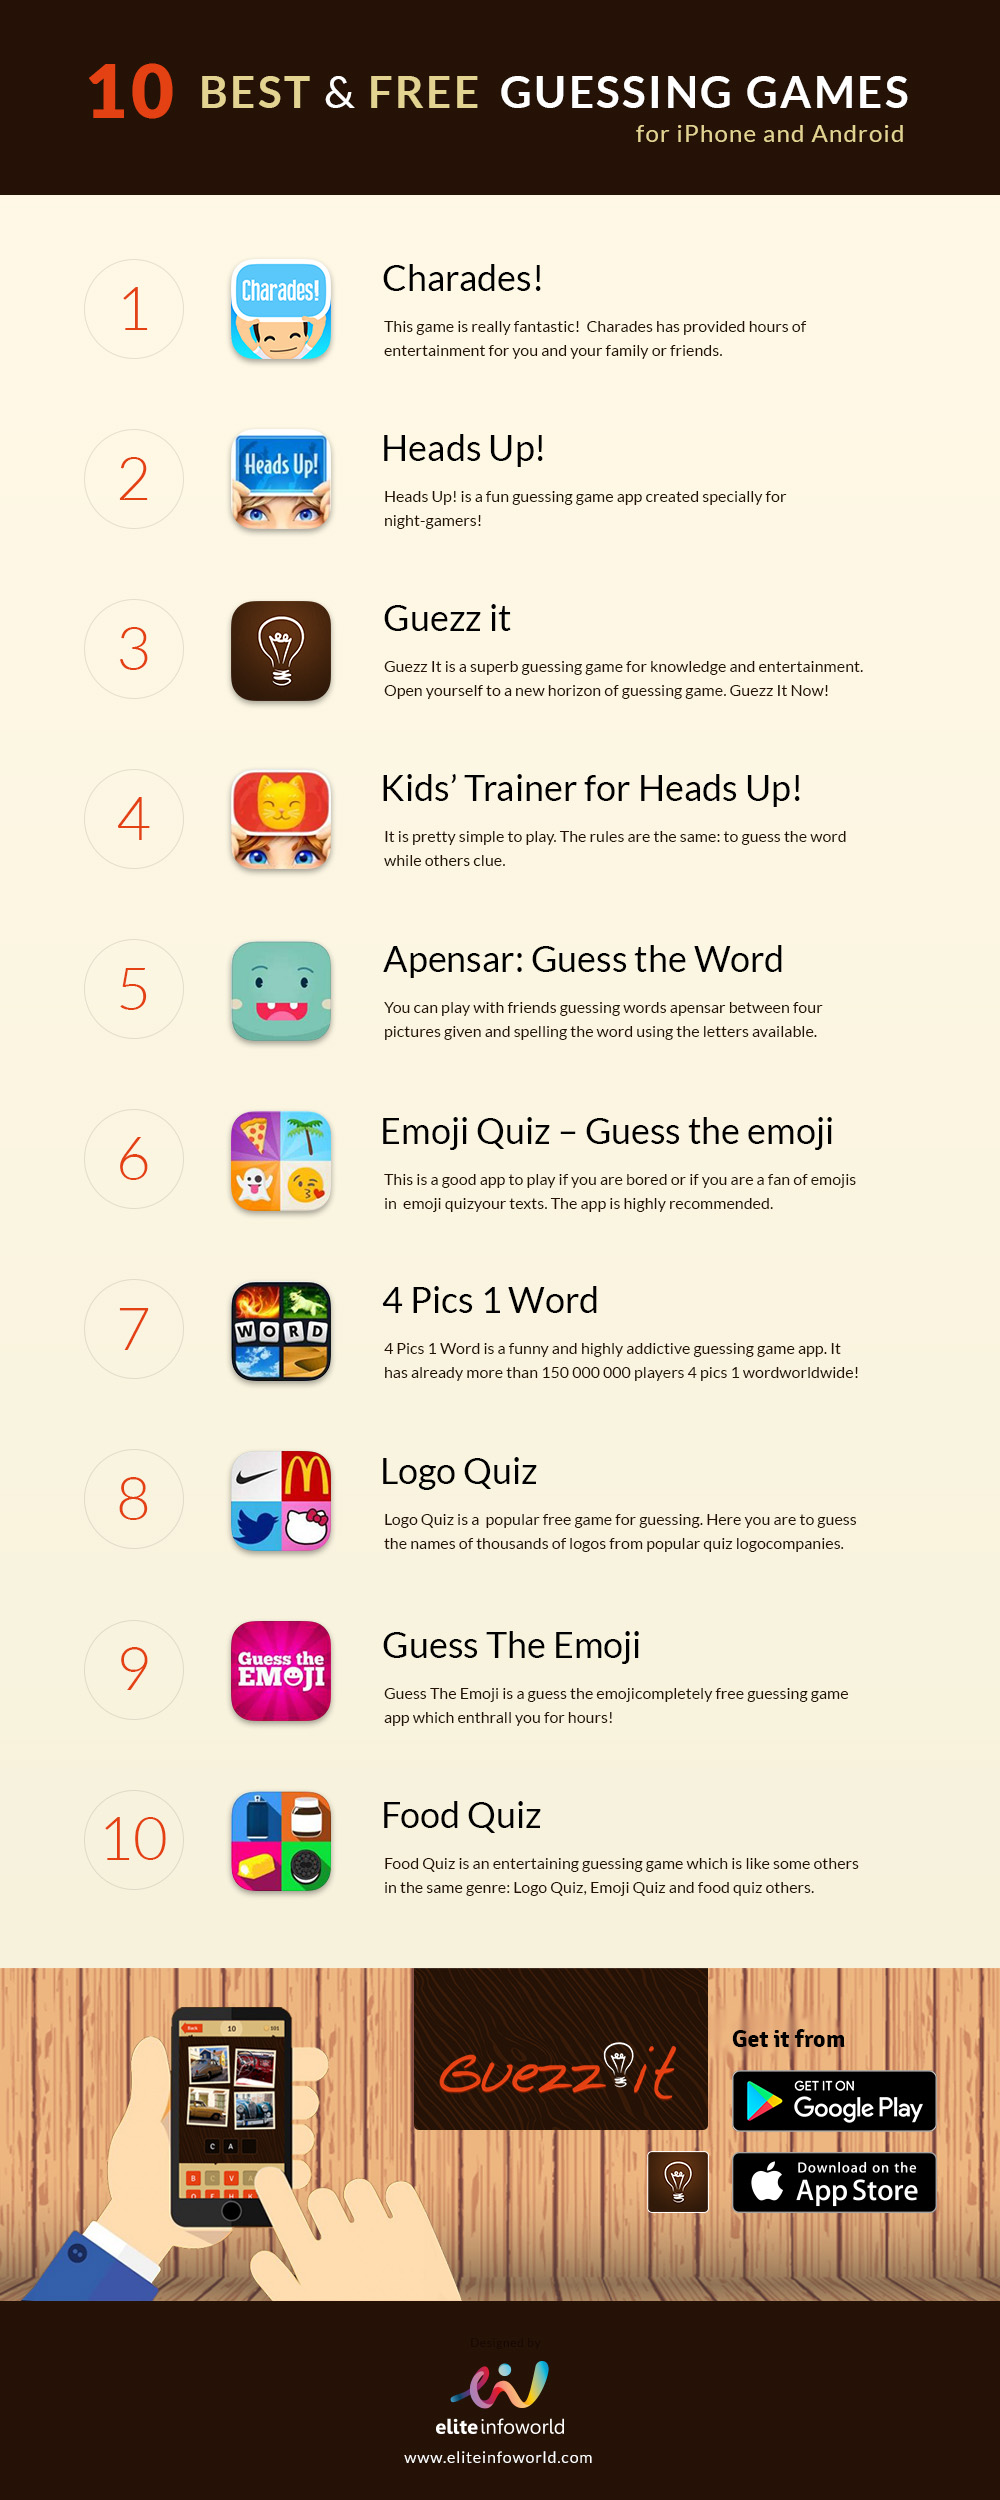 top-10-free-guessing-games-for-android-iphone-infographic-plaza